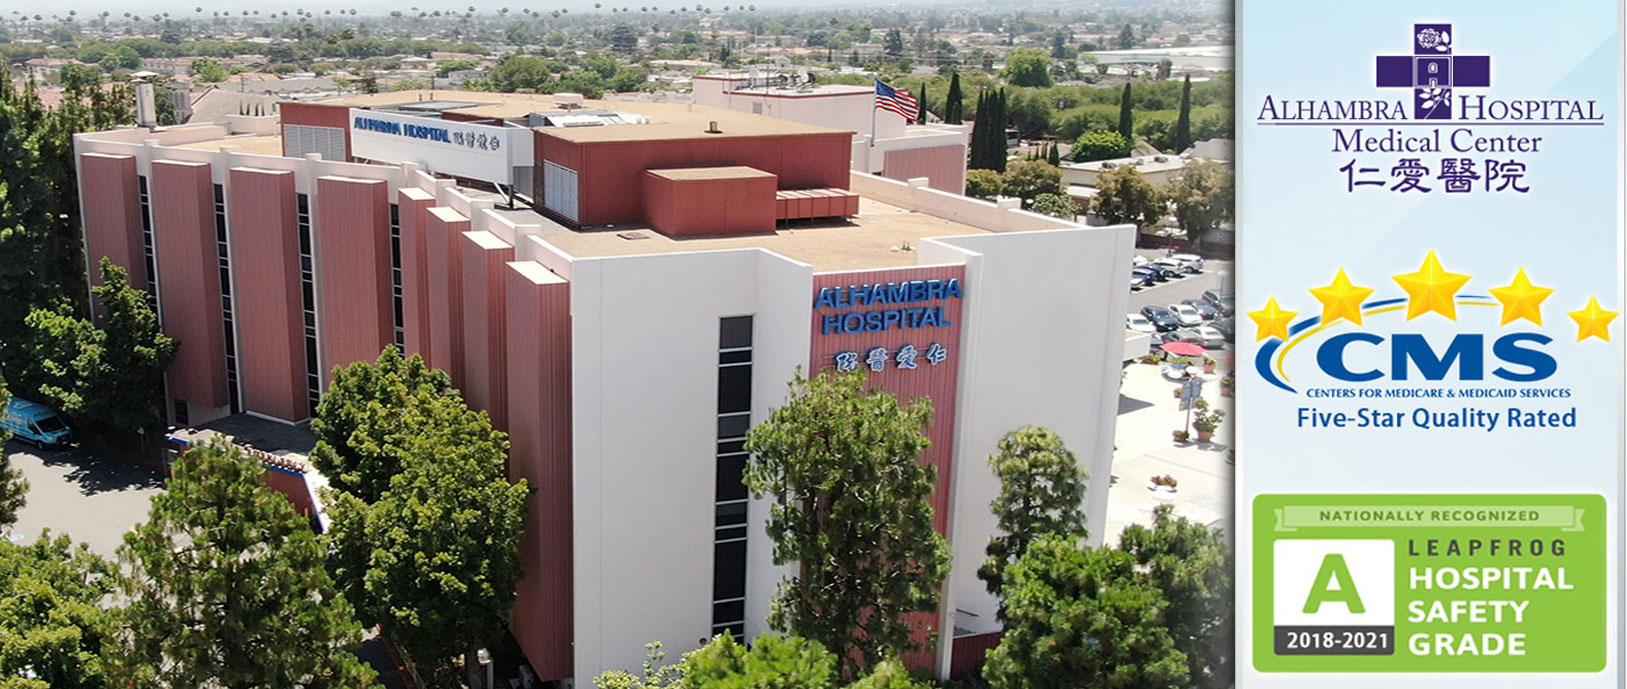 Banner picture of Alhambra Hospital  Alhambra Hospital Medical Center CMS  CENTERS FOR MEDICARE & MEDICAID SERVICES Five-Star Quality Rated  NATIONALLY RECOGNIZED LEAPFROG HOSPITAL SAFETY GRADE A 2018-2021